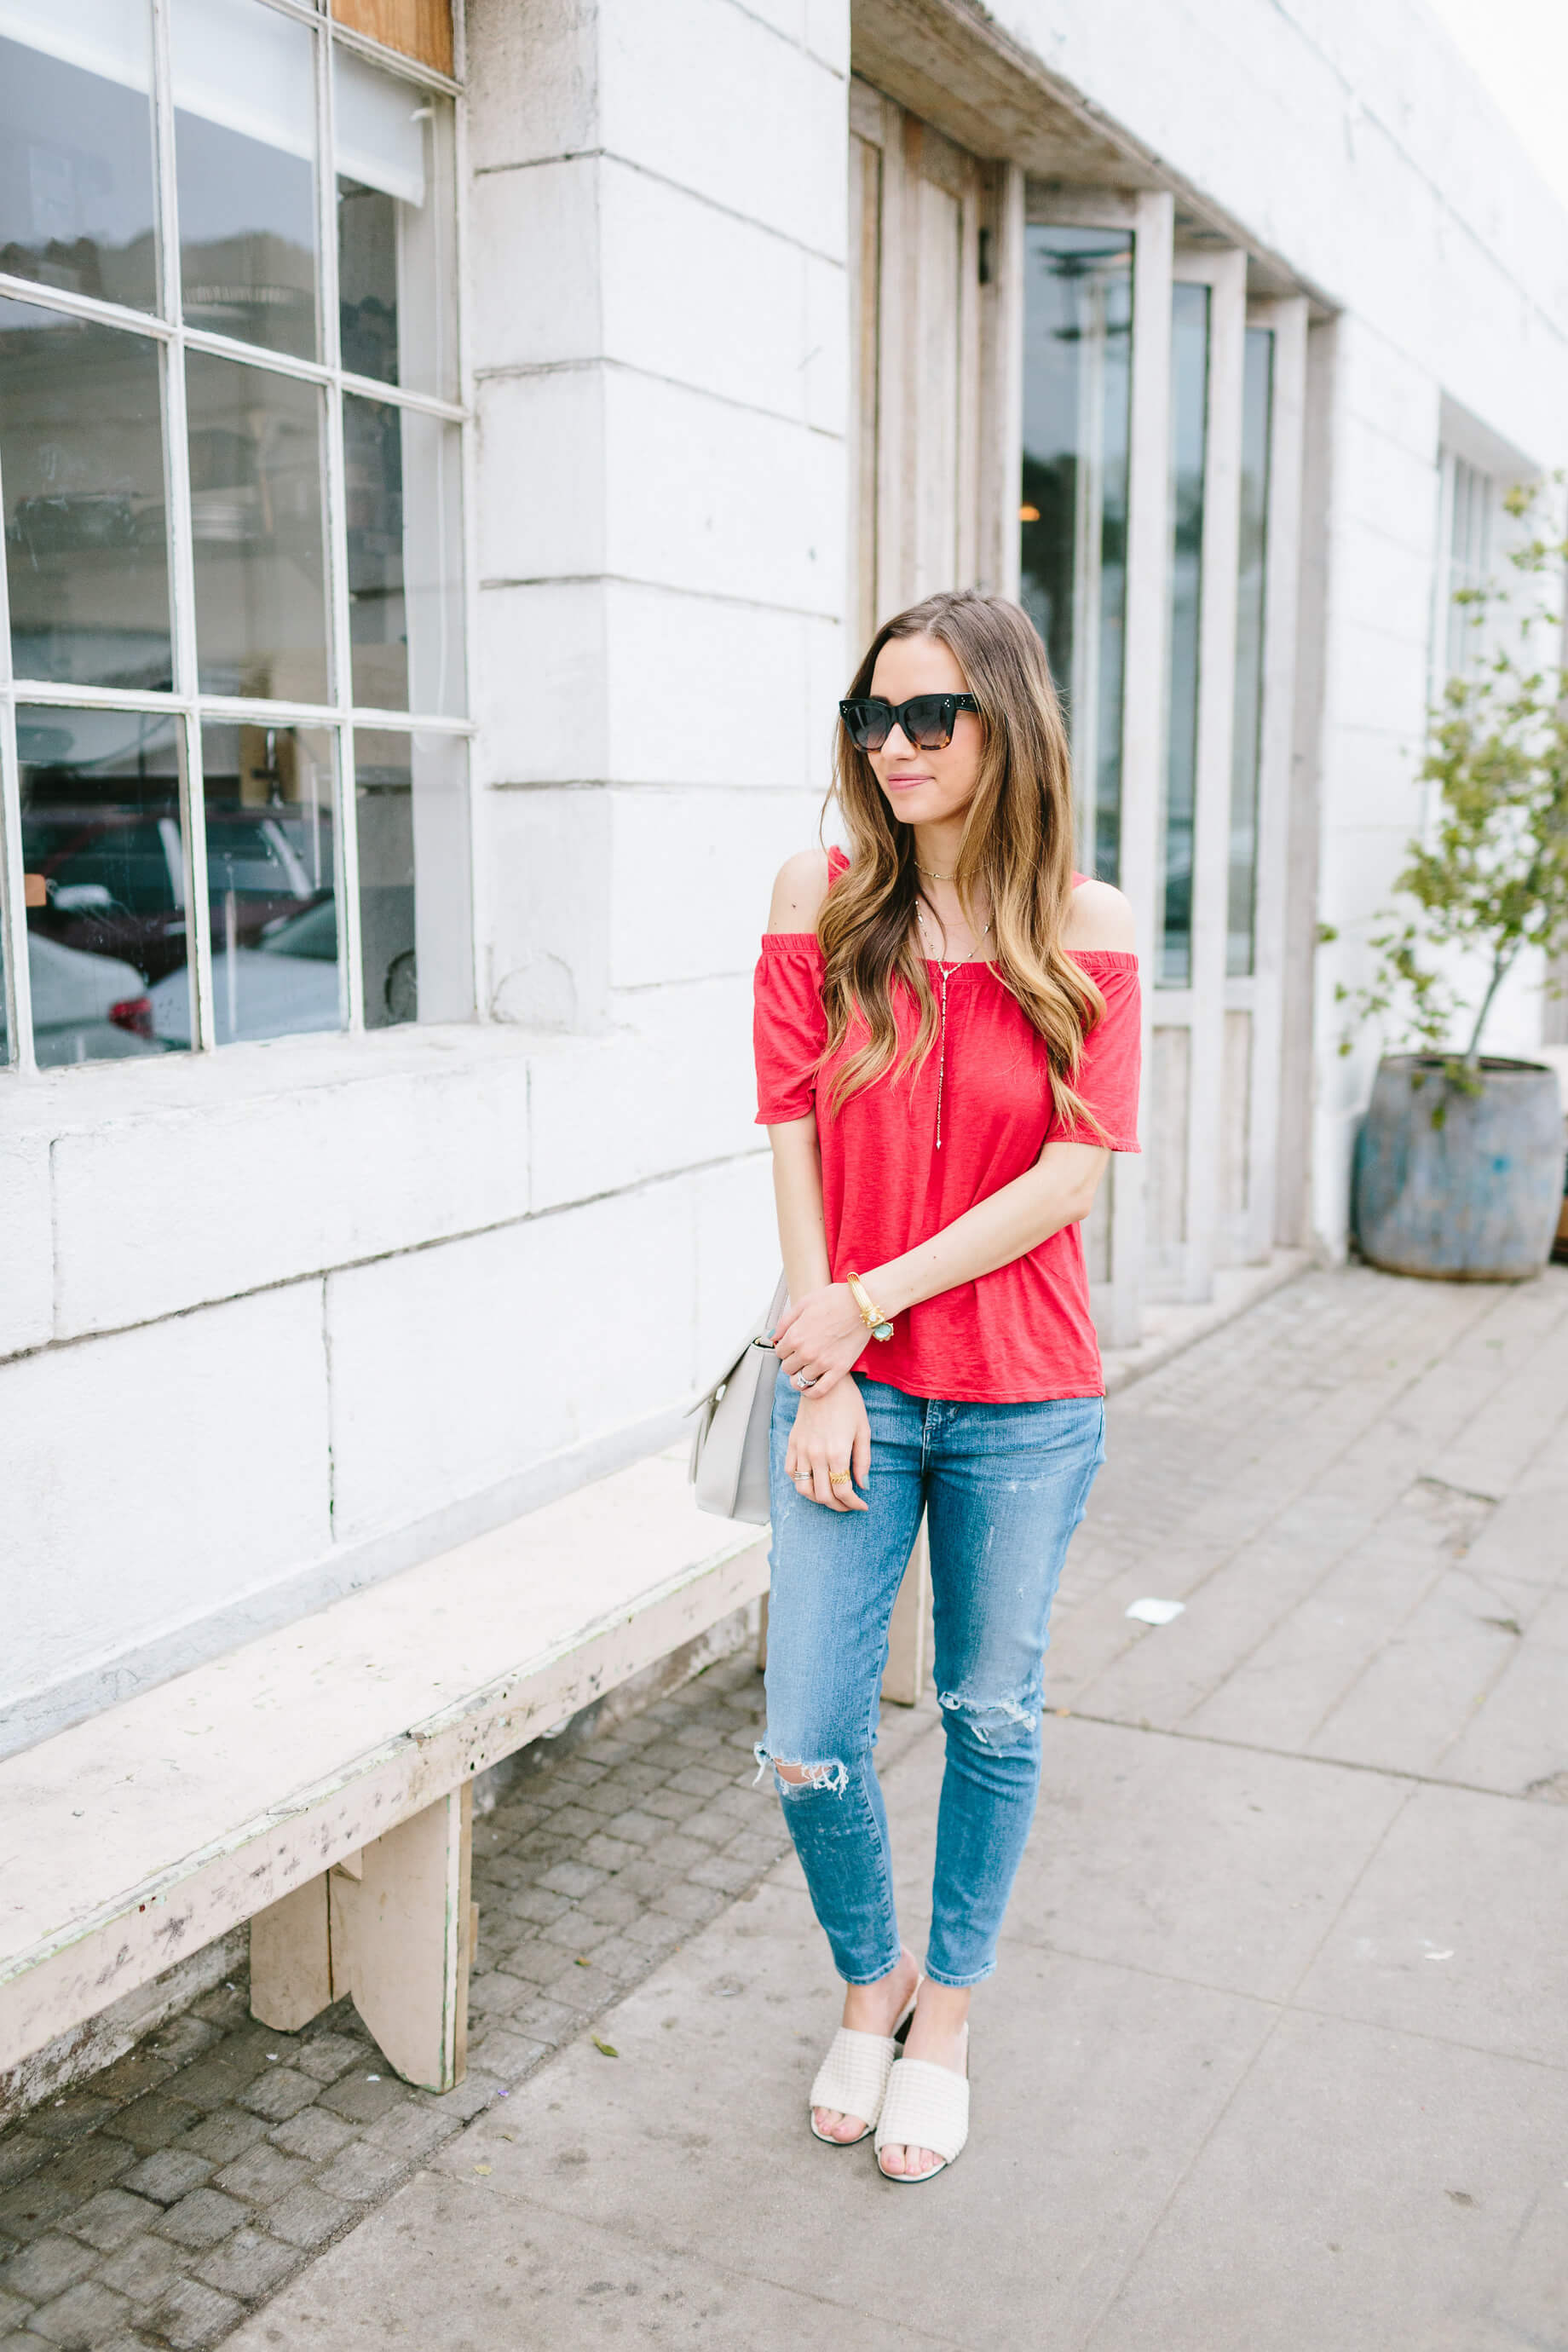 a cute jeans and t-shirt outfit for spring